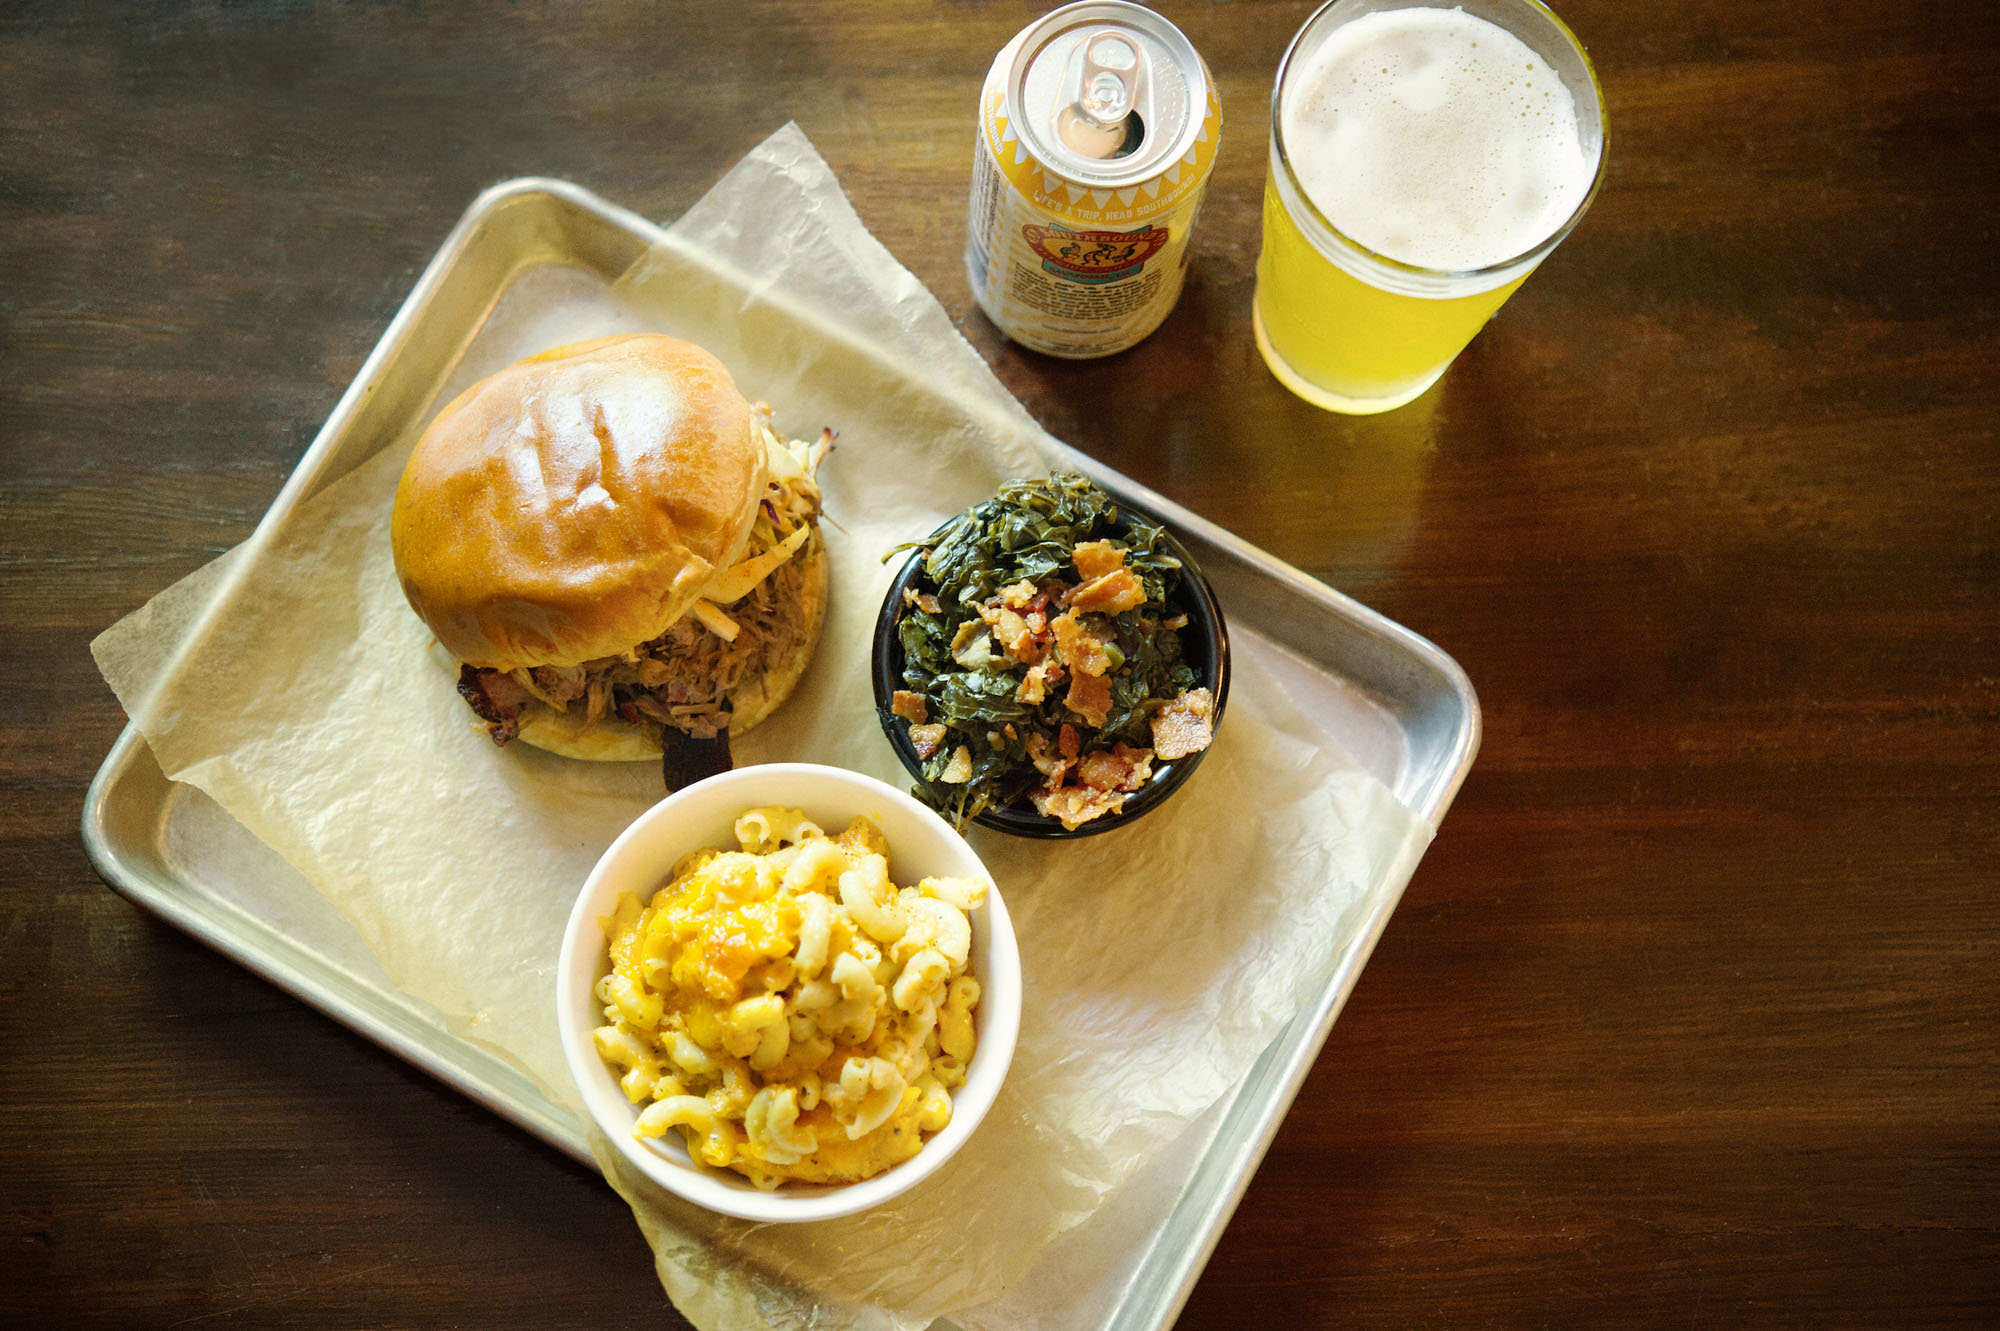 Barbecue, macaroni and cheese, collard greens and beer at Southbound Smokehouse in Augusta, Georgia